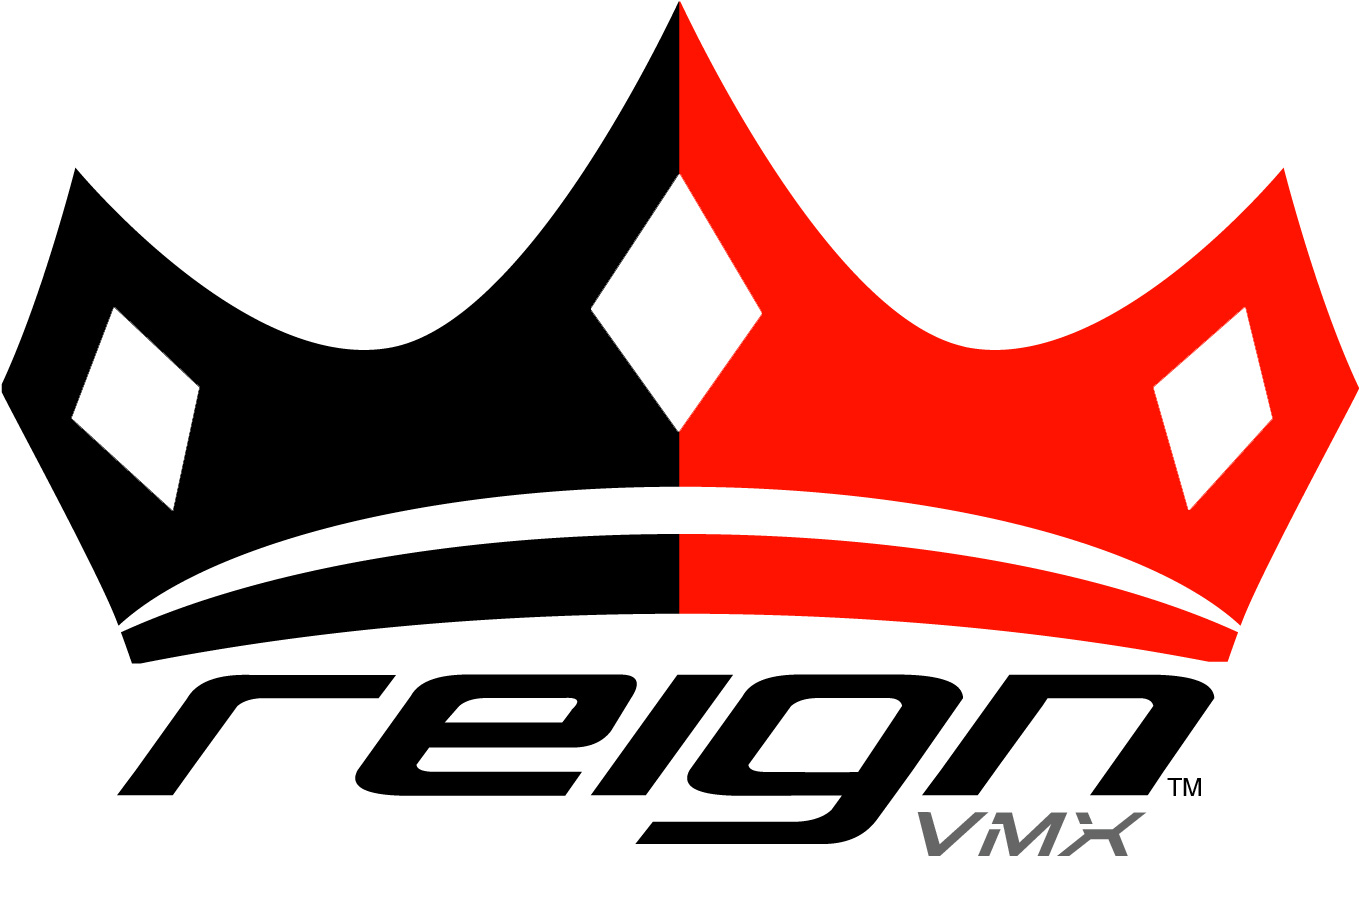 Reign VMX - Makers of vintage-inspired motocross jerseys, pants, gloves, goggles, and other accessories.To find out more, click here!